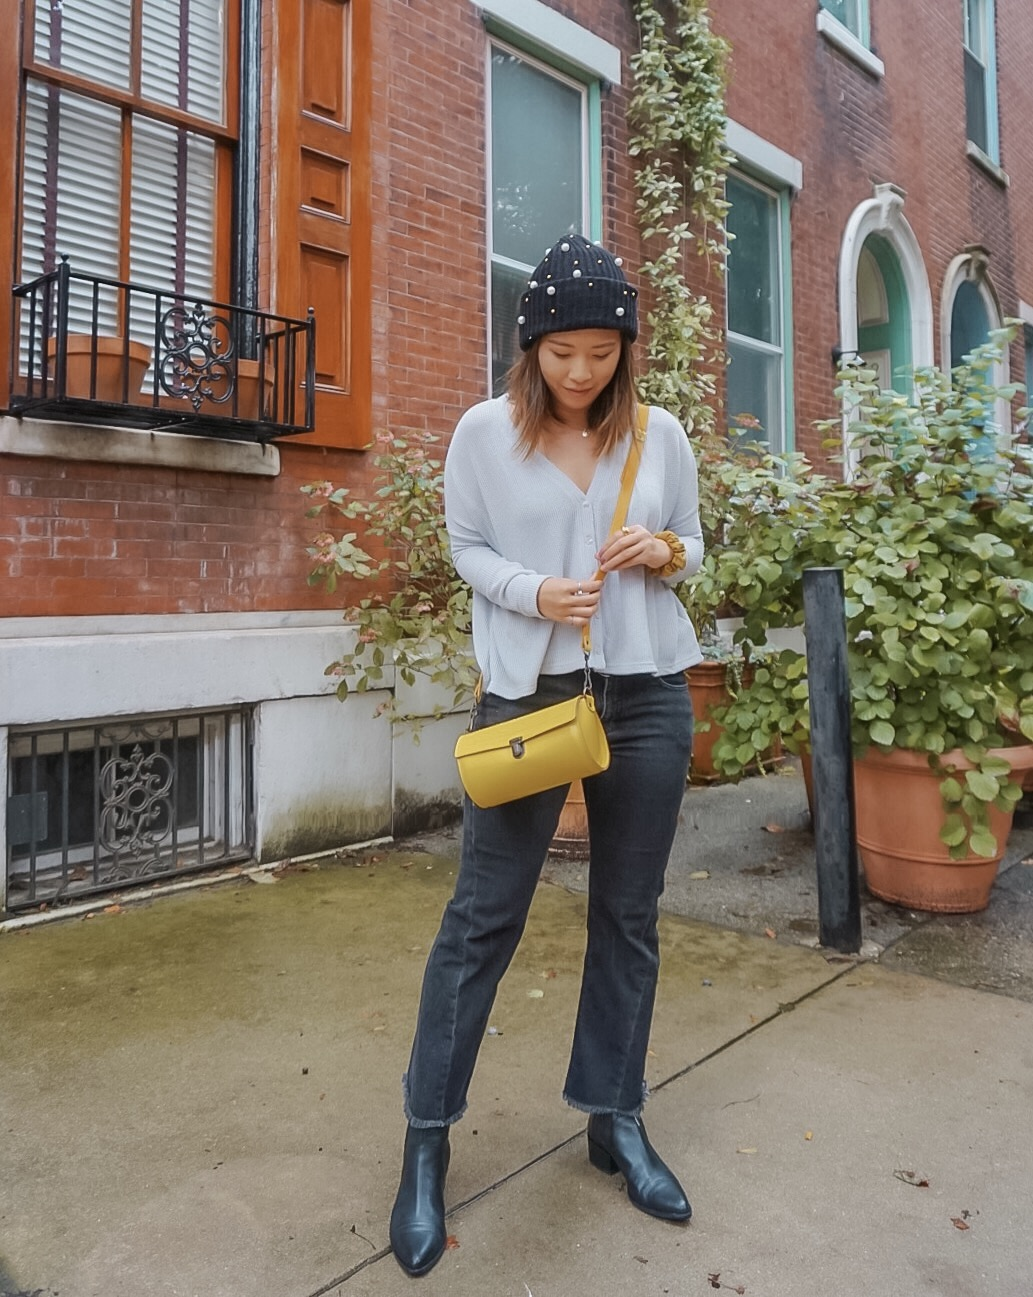 UO Courtney Cardigan  // Mid-Rise Cropped Bootcut Jeans ( Similar Here ) //  Vegabond Marja Cap Toe Bootie  (More Affordable  Here )// Nasty Gal Pearl Beanie (Affordable & Similar  Here ) // Yellow Crossbody (Similar  Here )